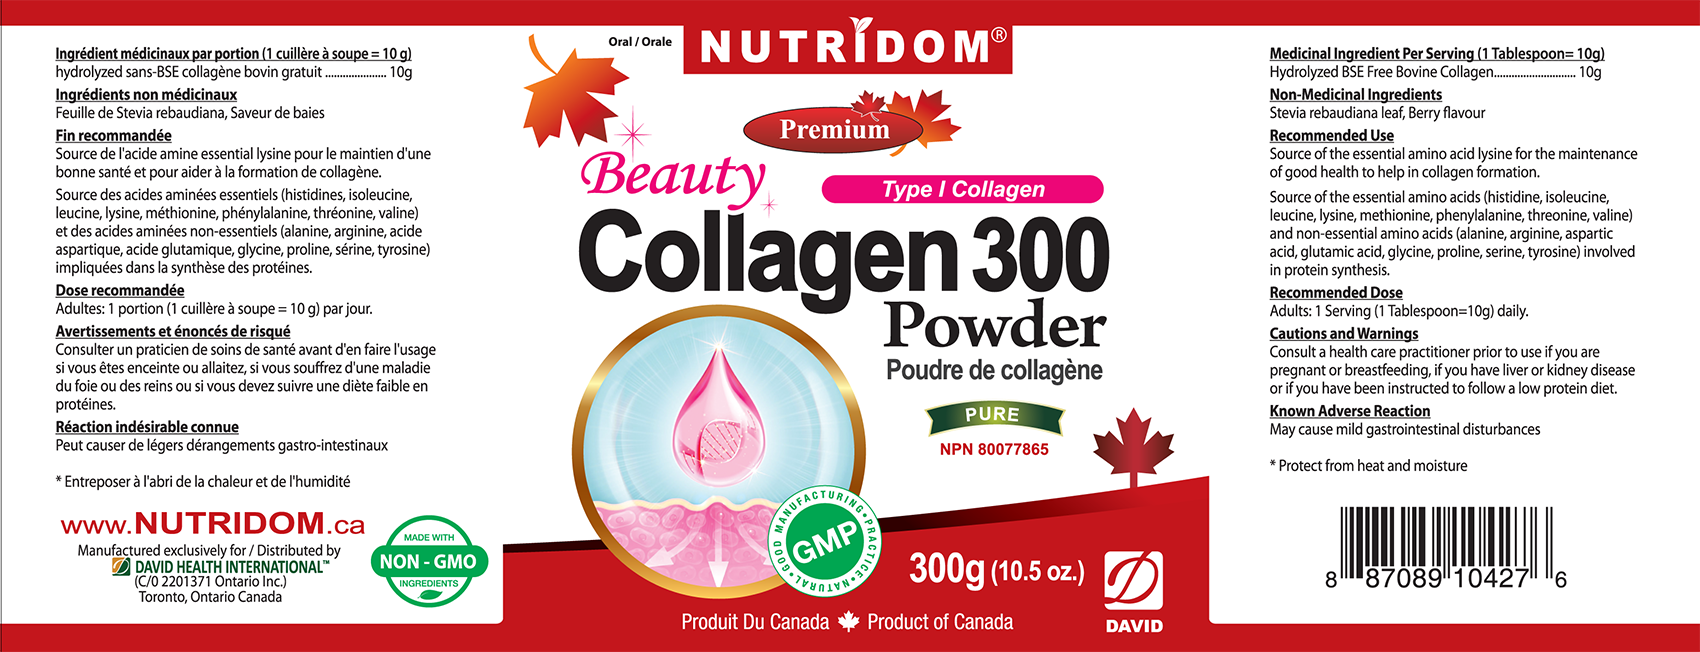 NUTRIDOM Beauty Collagen